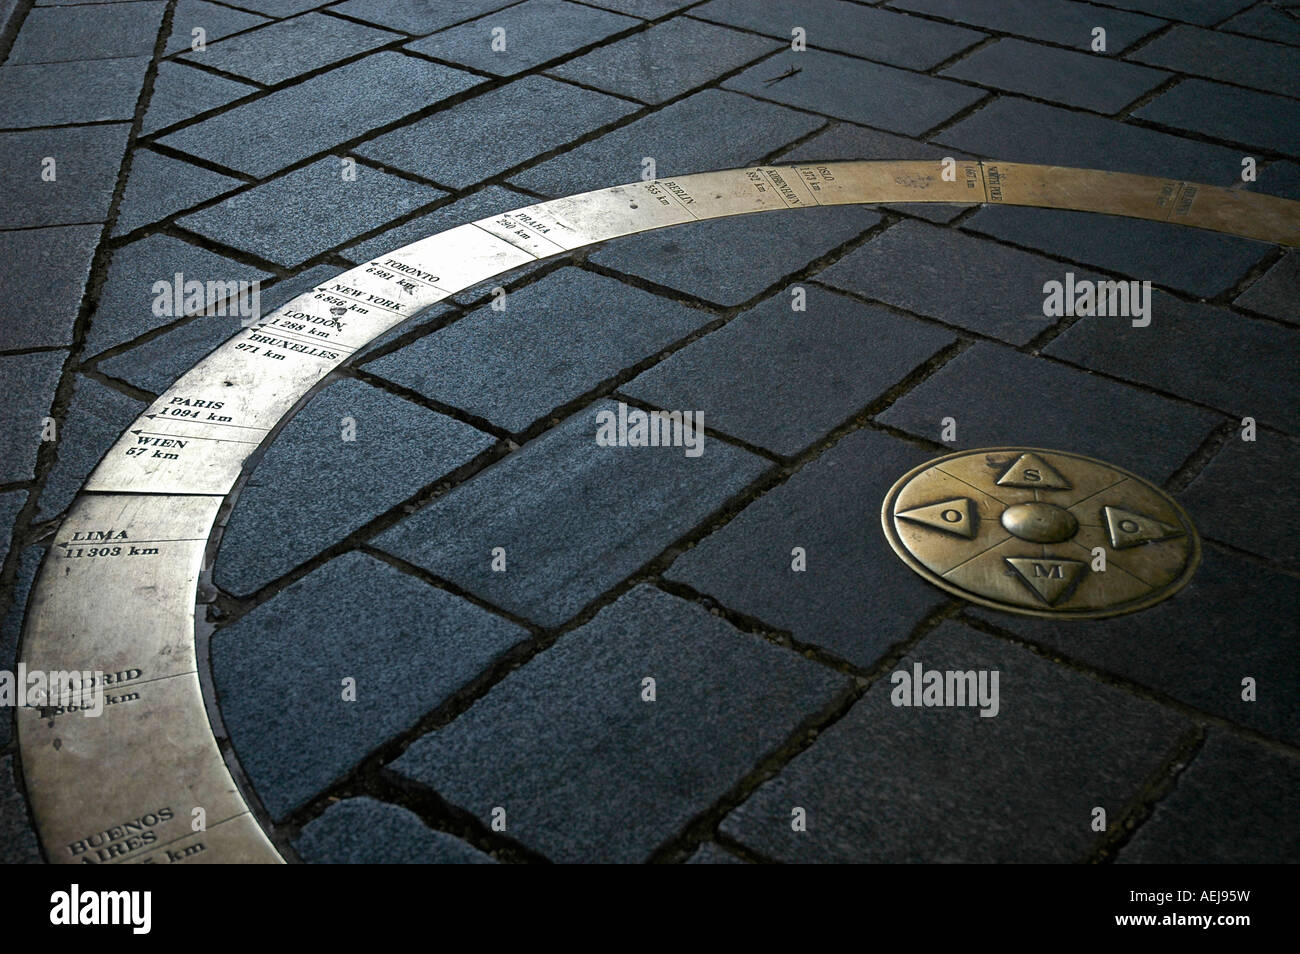 World circle, marking of distances at the Michaelsgate, Bratislava, Slovakia - Stock Image